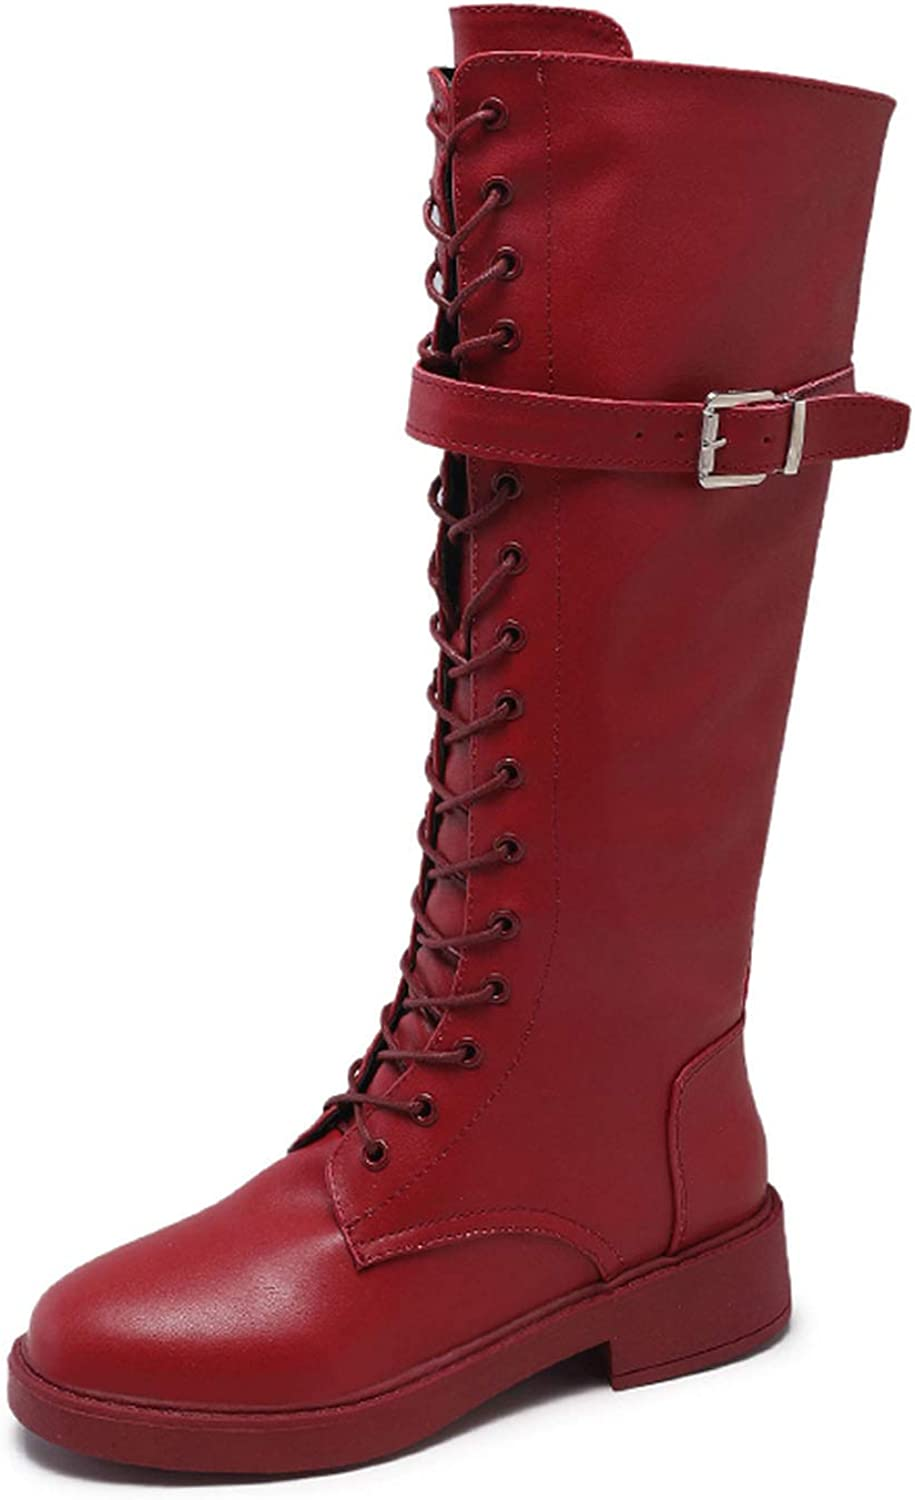 Together to create a miracle Women's Leather Boots Thigh High Heel Lace Up Privacyy Over The Knee Boots Dance Party shoes for Women